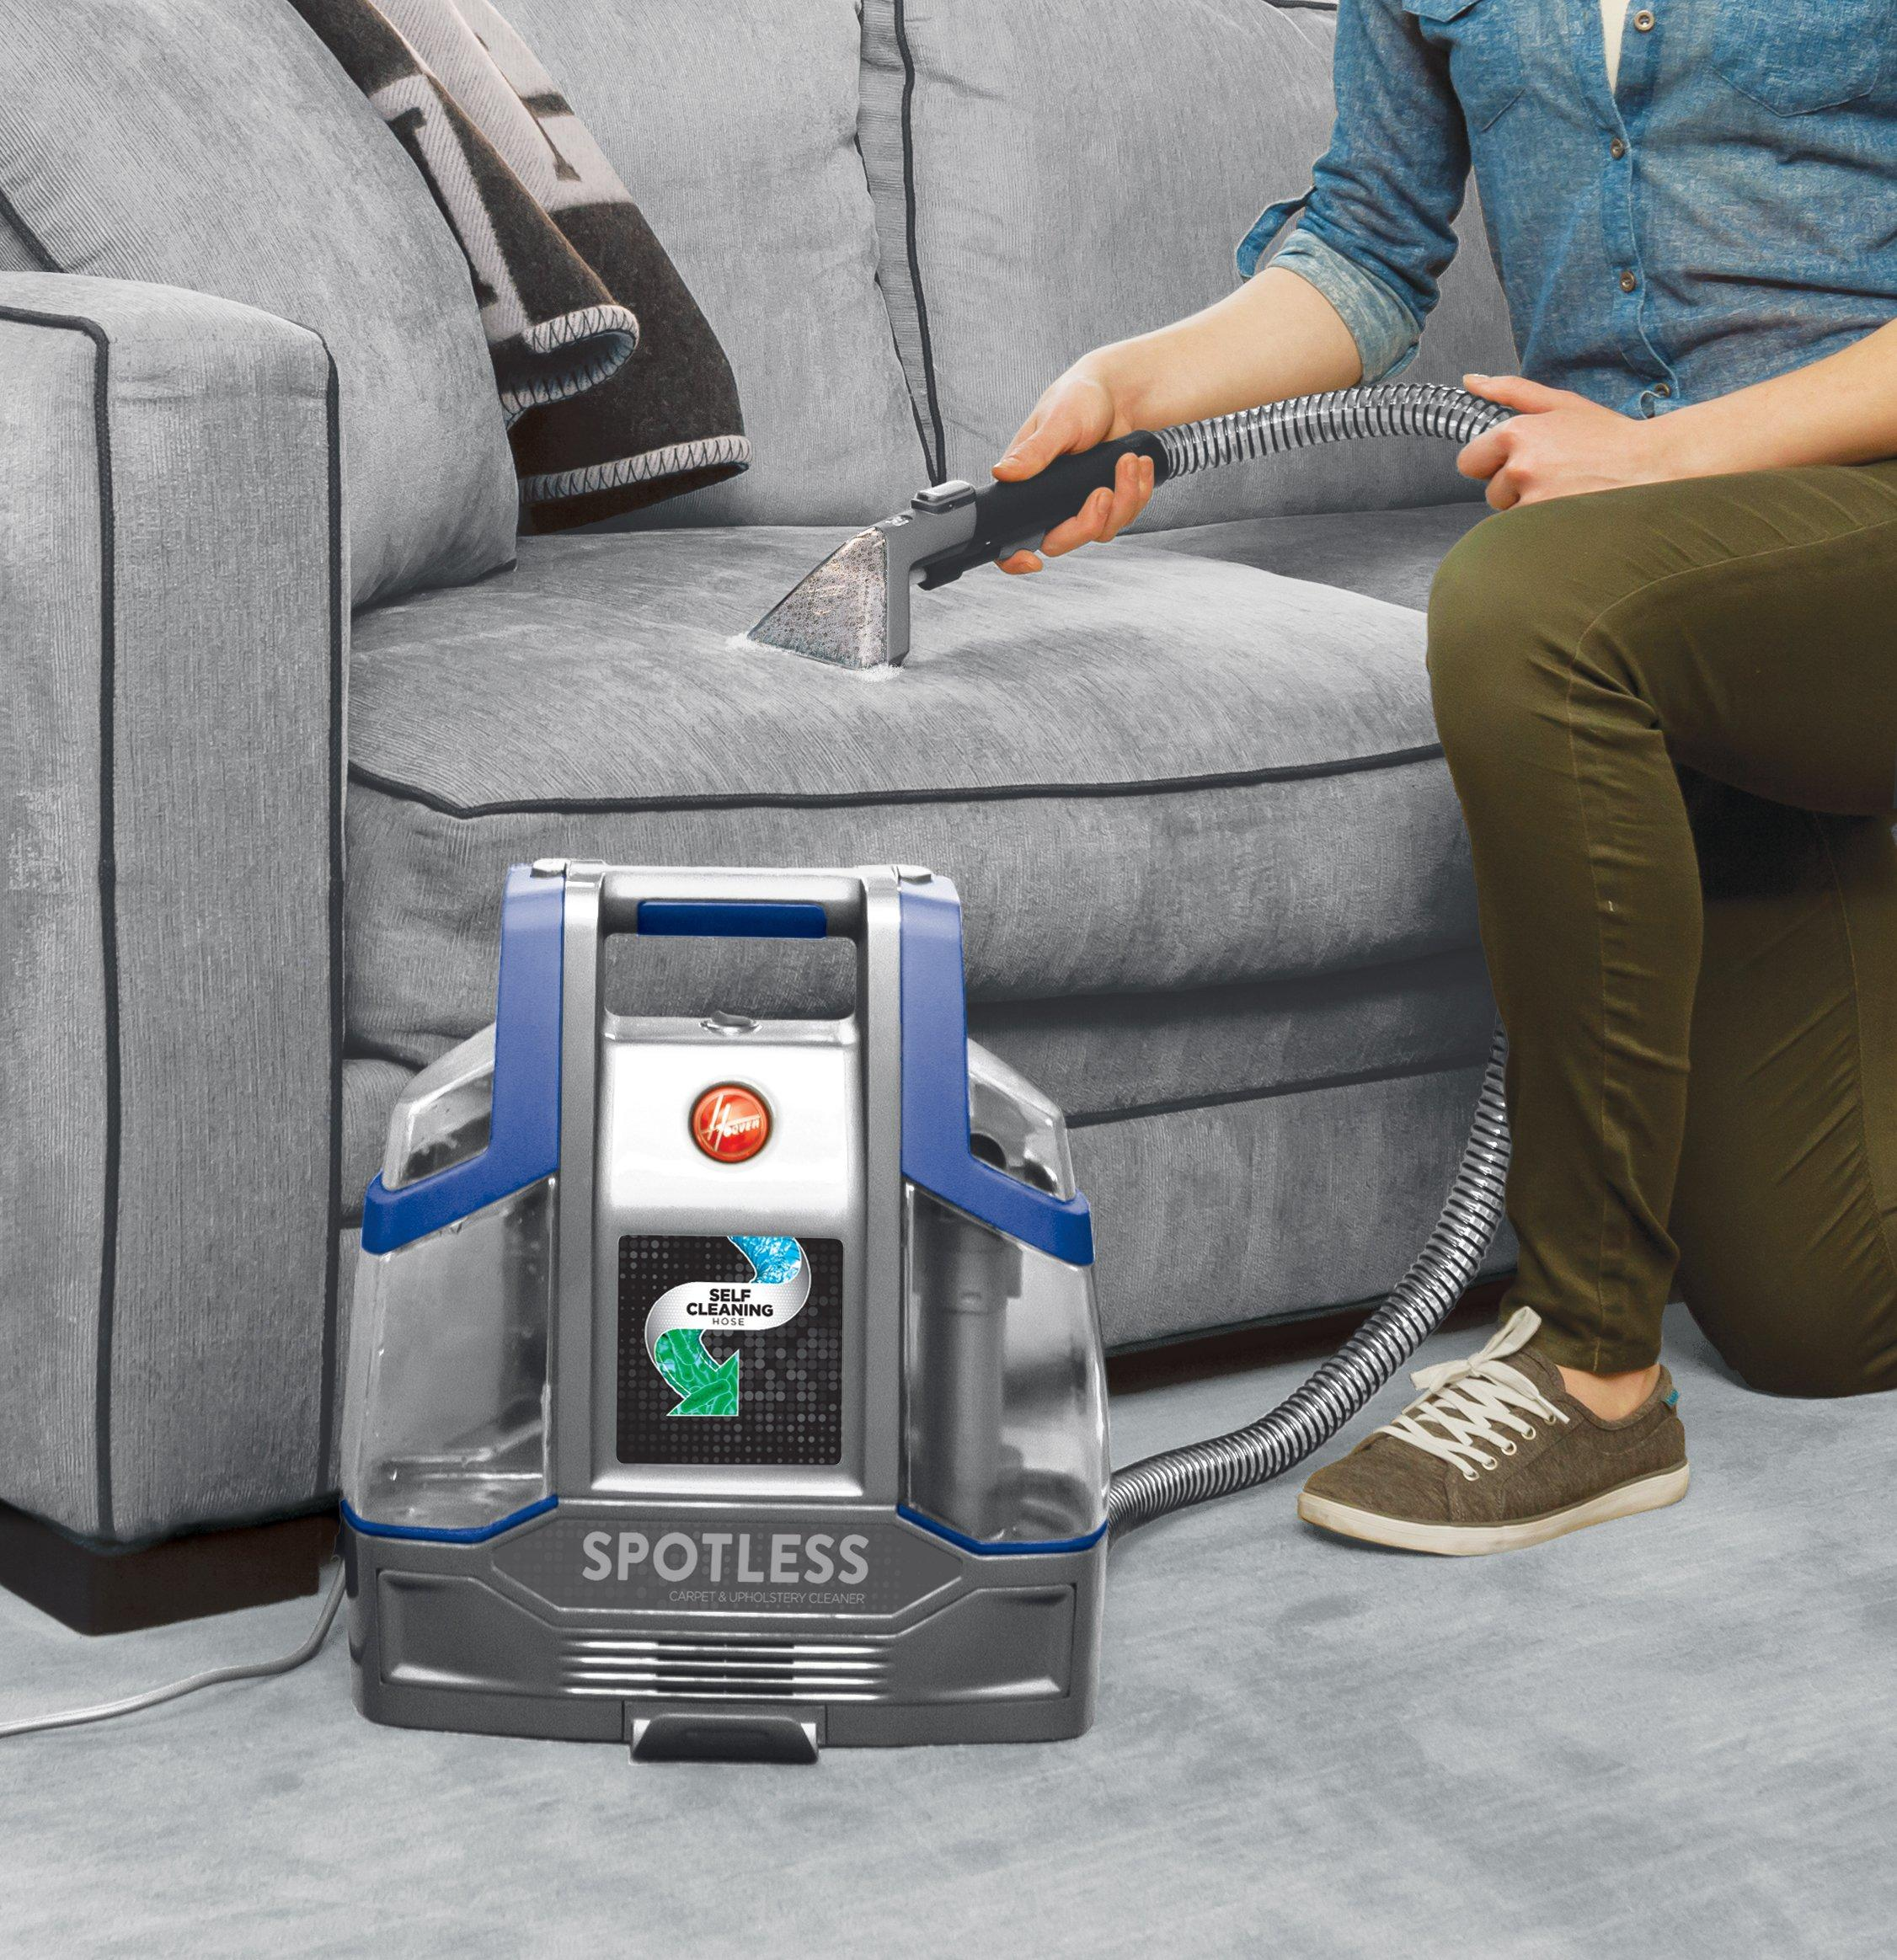 Hoover-Spotless-Deluxe-Portable-Carpet-amp-Upholstery-Cleaner-FH11400 thumbnail 4